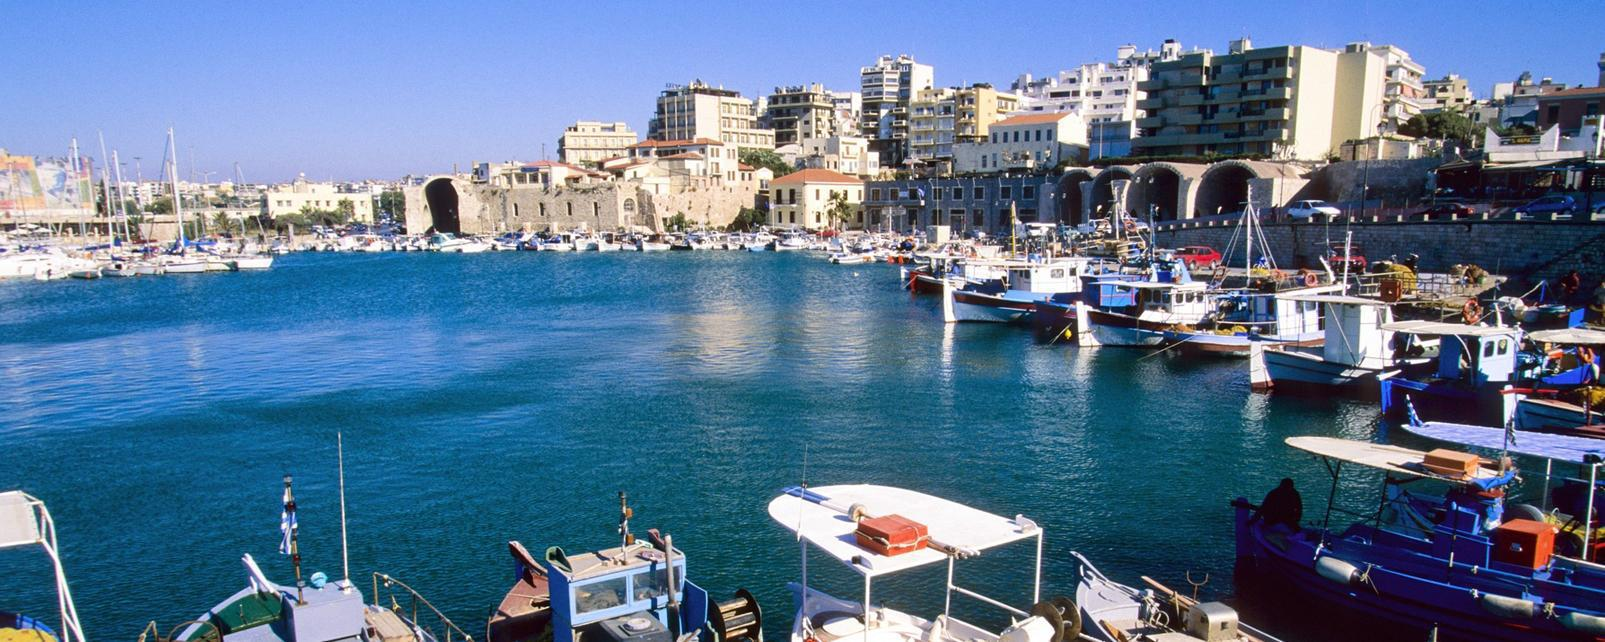 Heraklion (Candia)